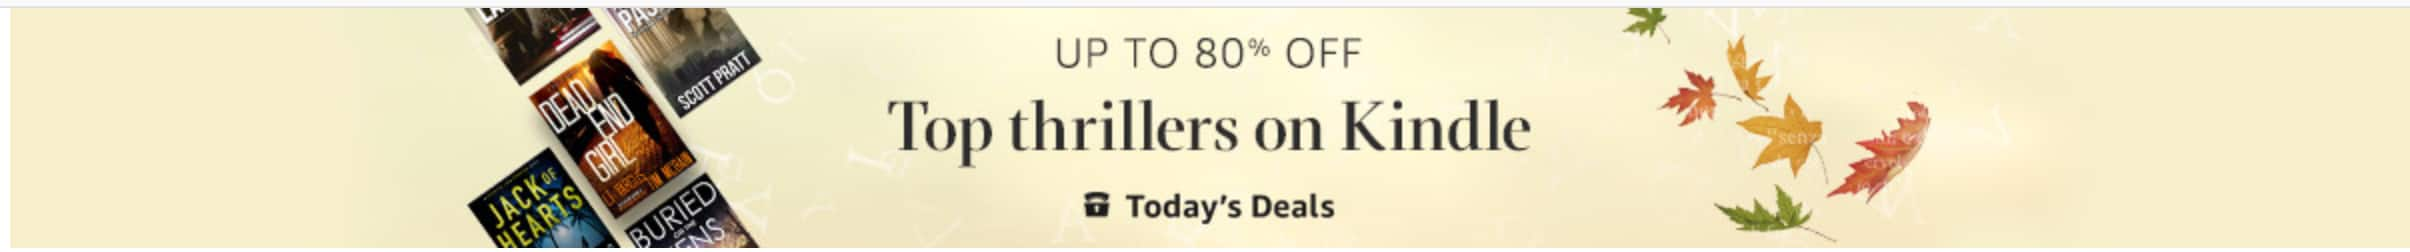 Deal of the Day: $0.99 - $3.99 Select Top Thrillers on Kindle @ Amazon